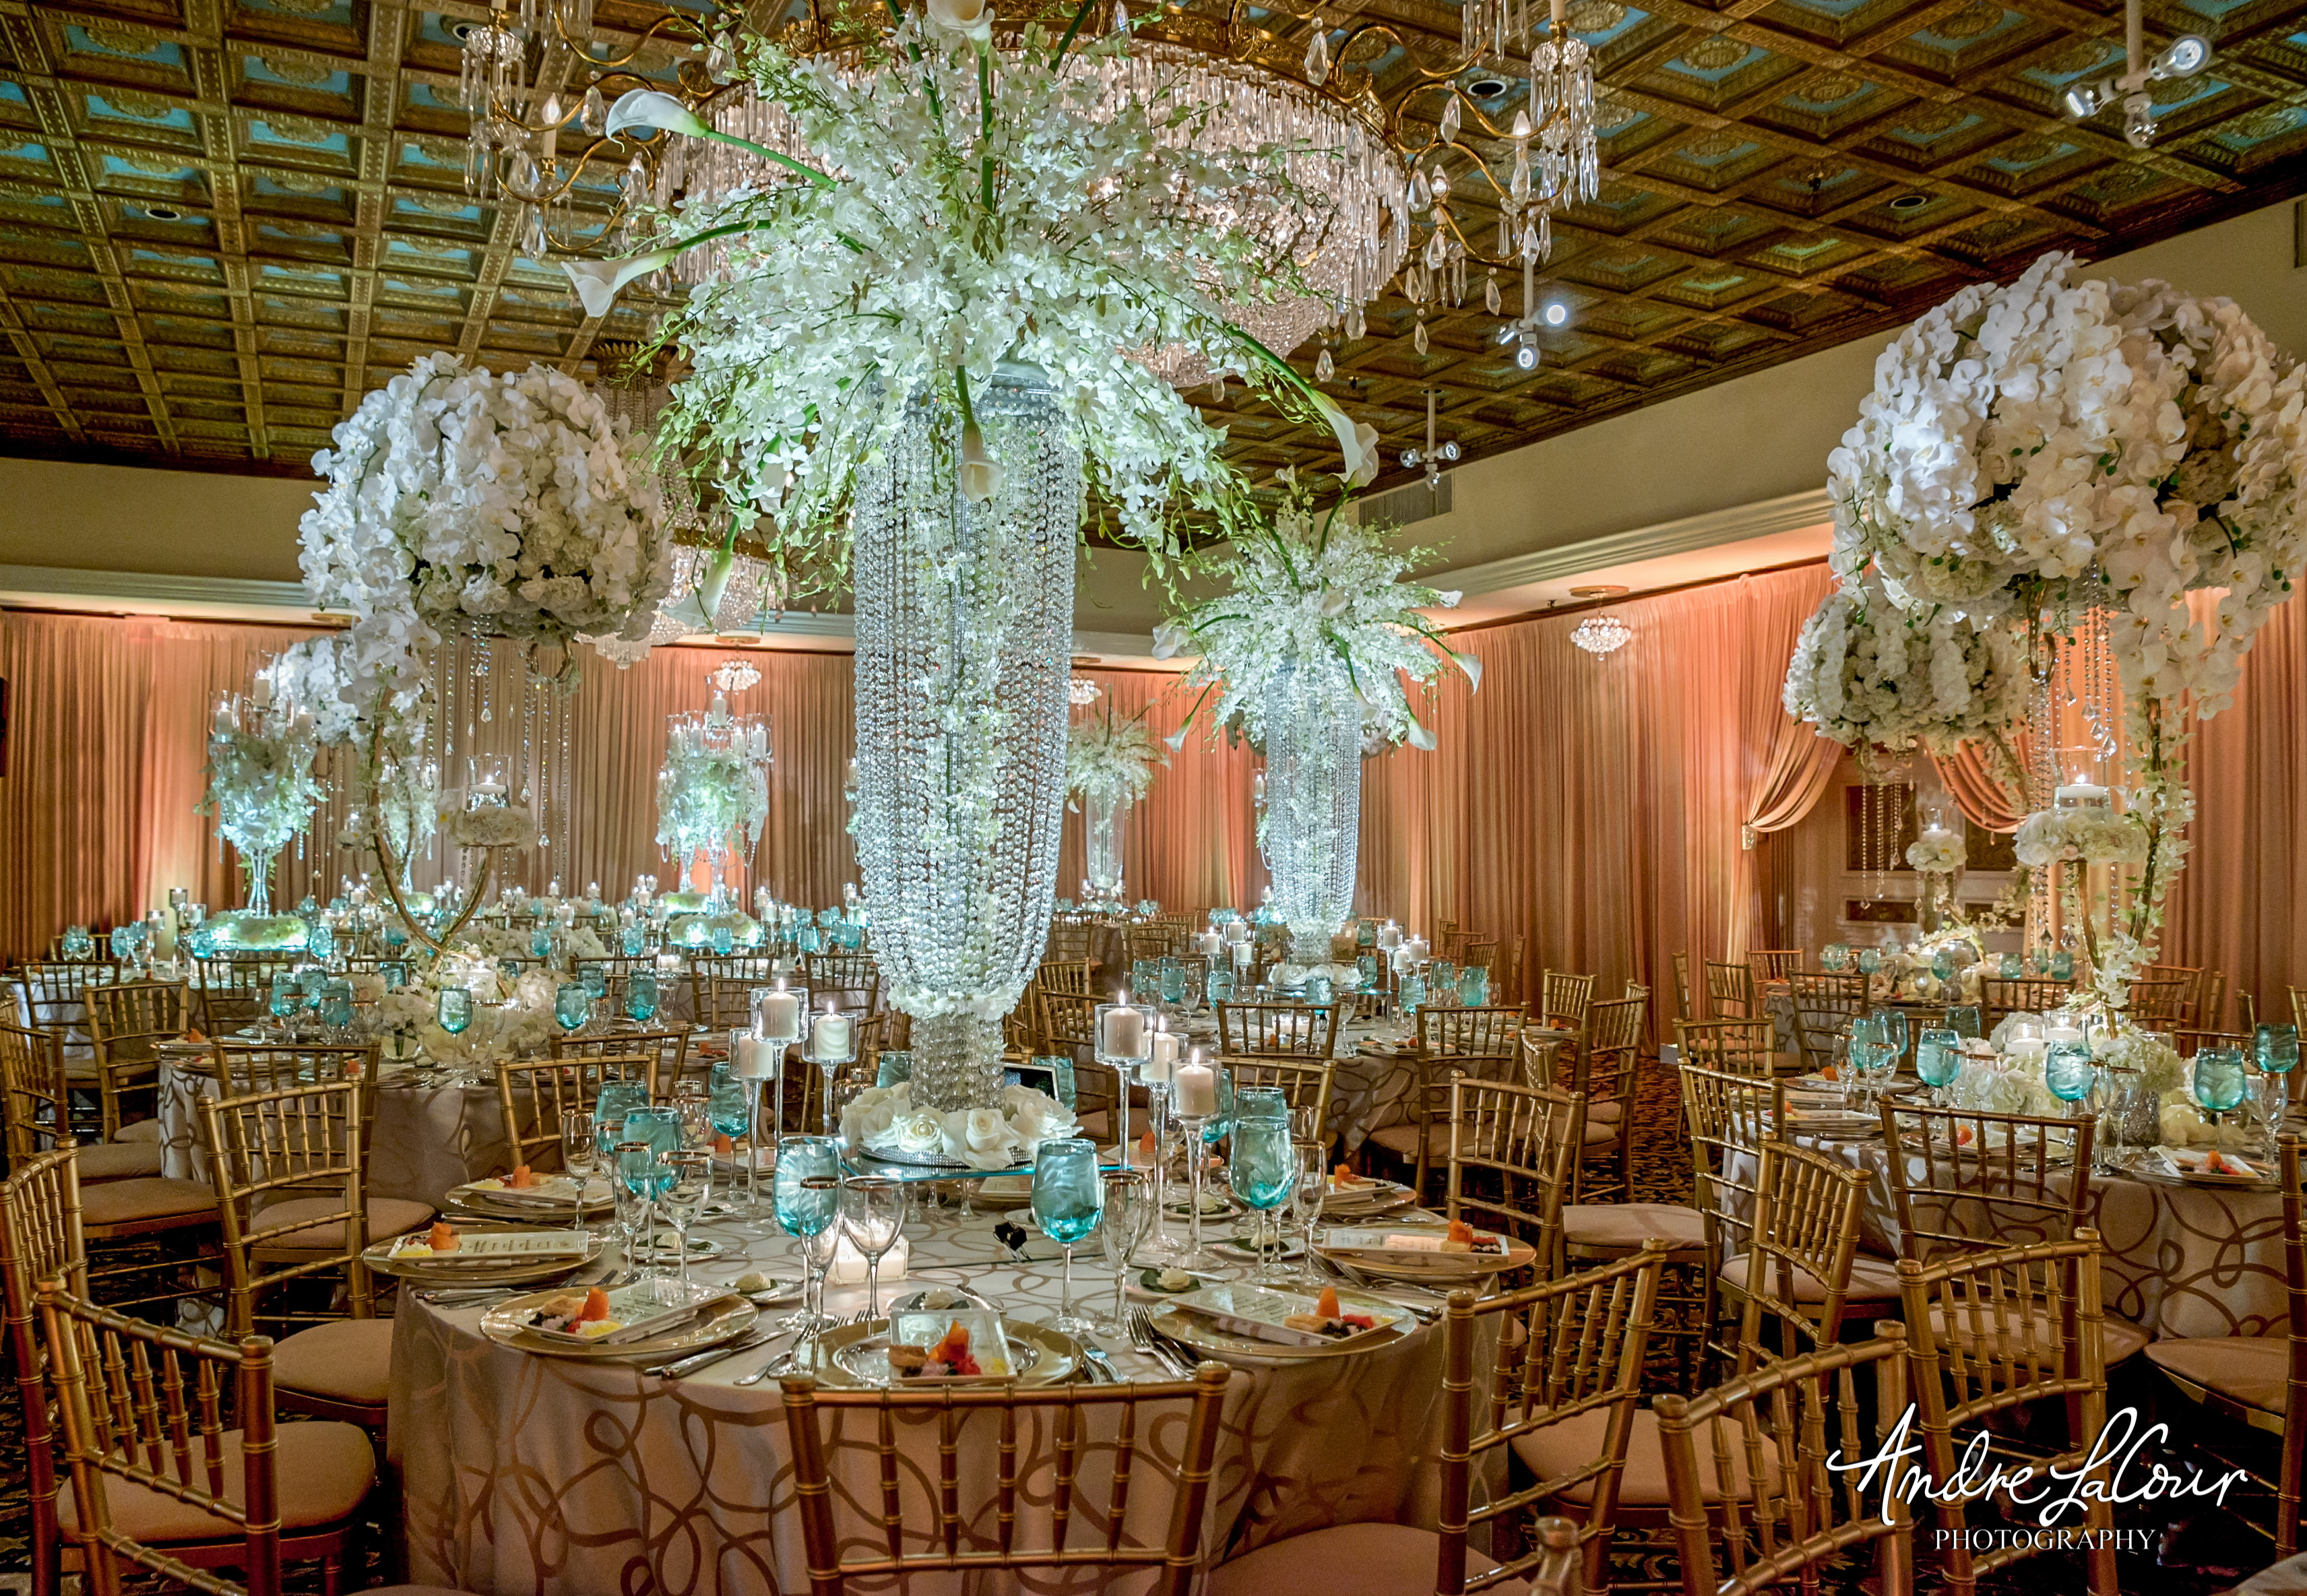 Exquisite wedding reception showcases grand modern centerpieces dressed in crystals and fresh floral.